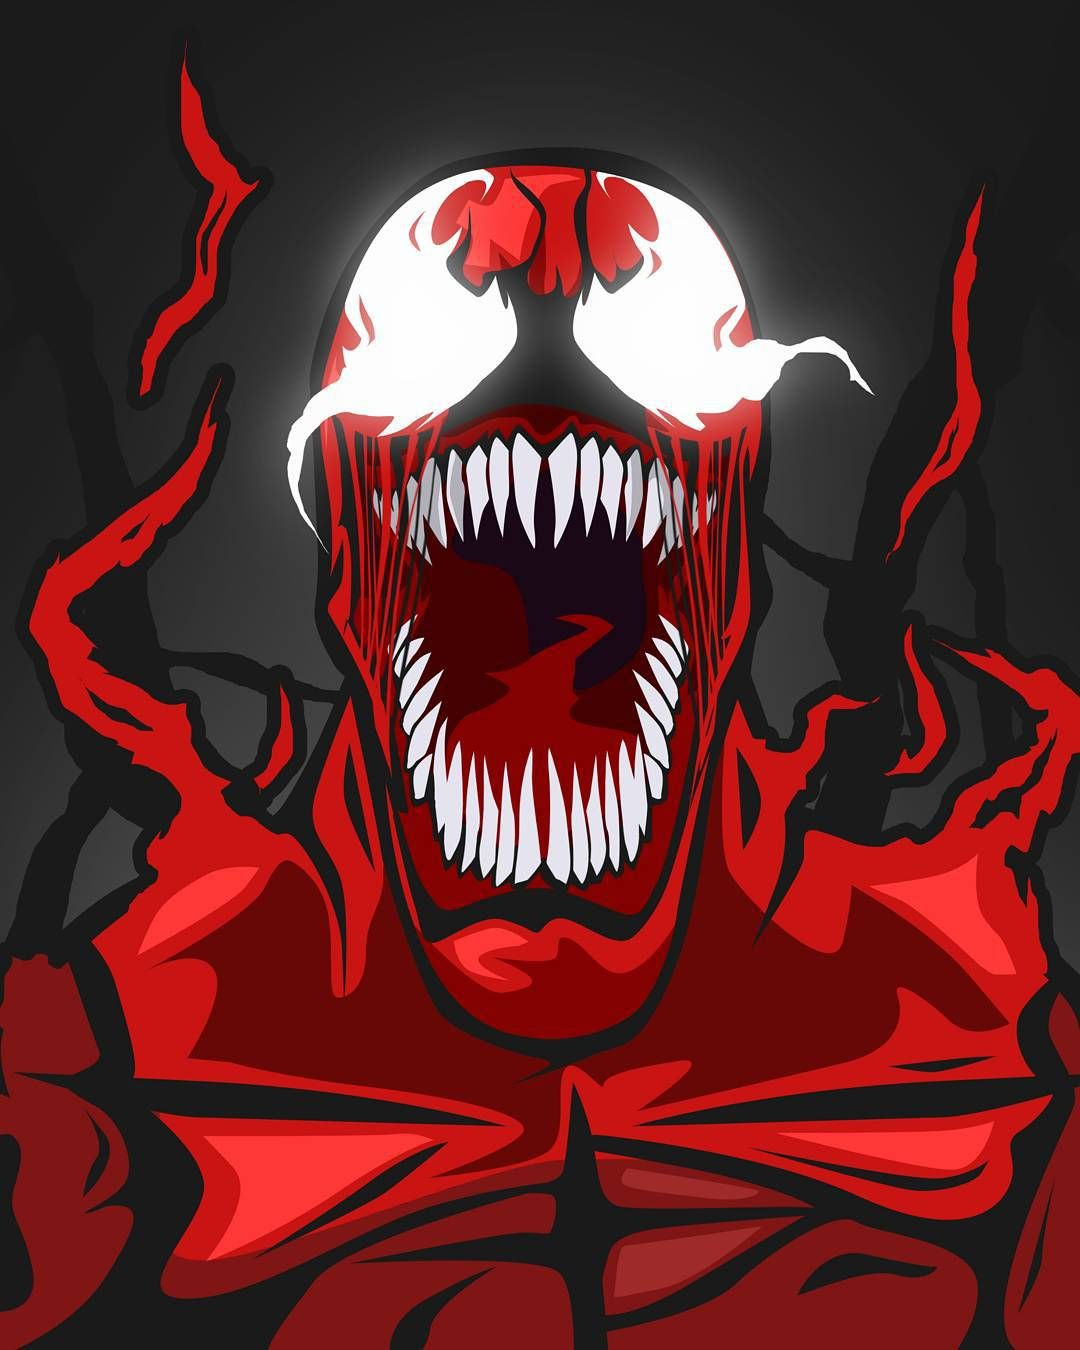 As requested here is Carnage rageseries by bosslogix